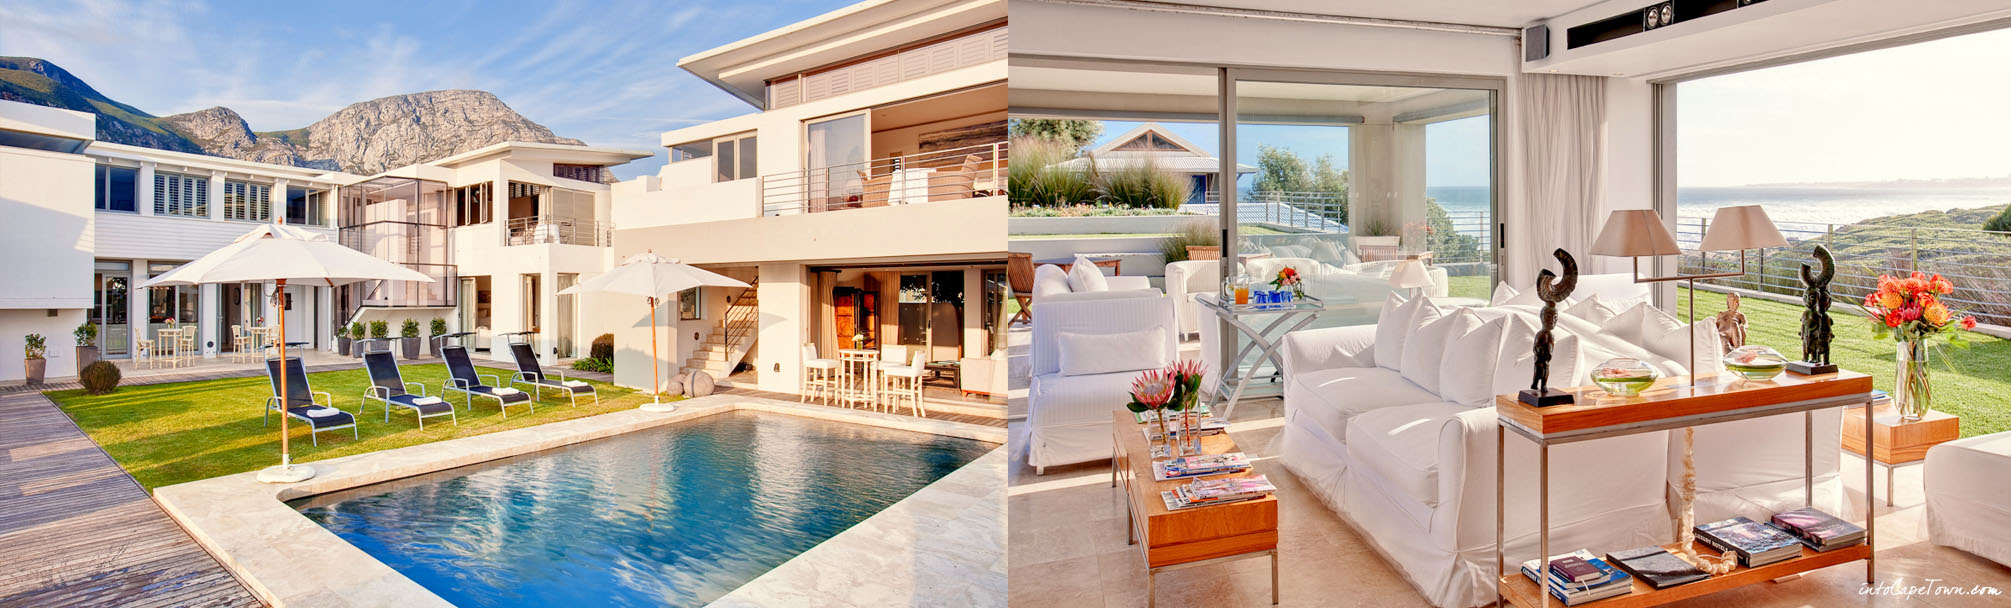 Luxury Birkenhead Villa in Hermanus on IntoCapeTown.com